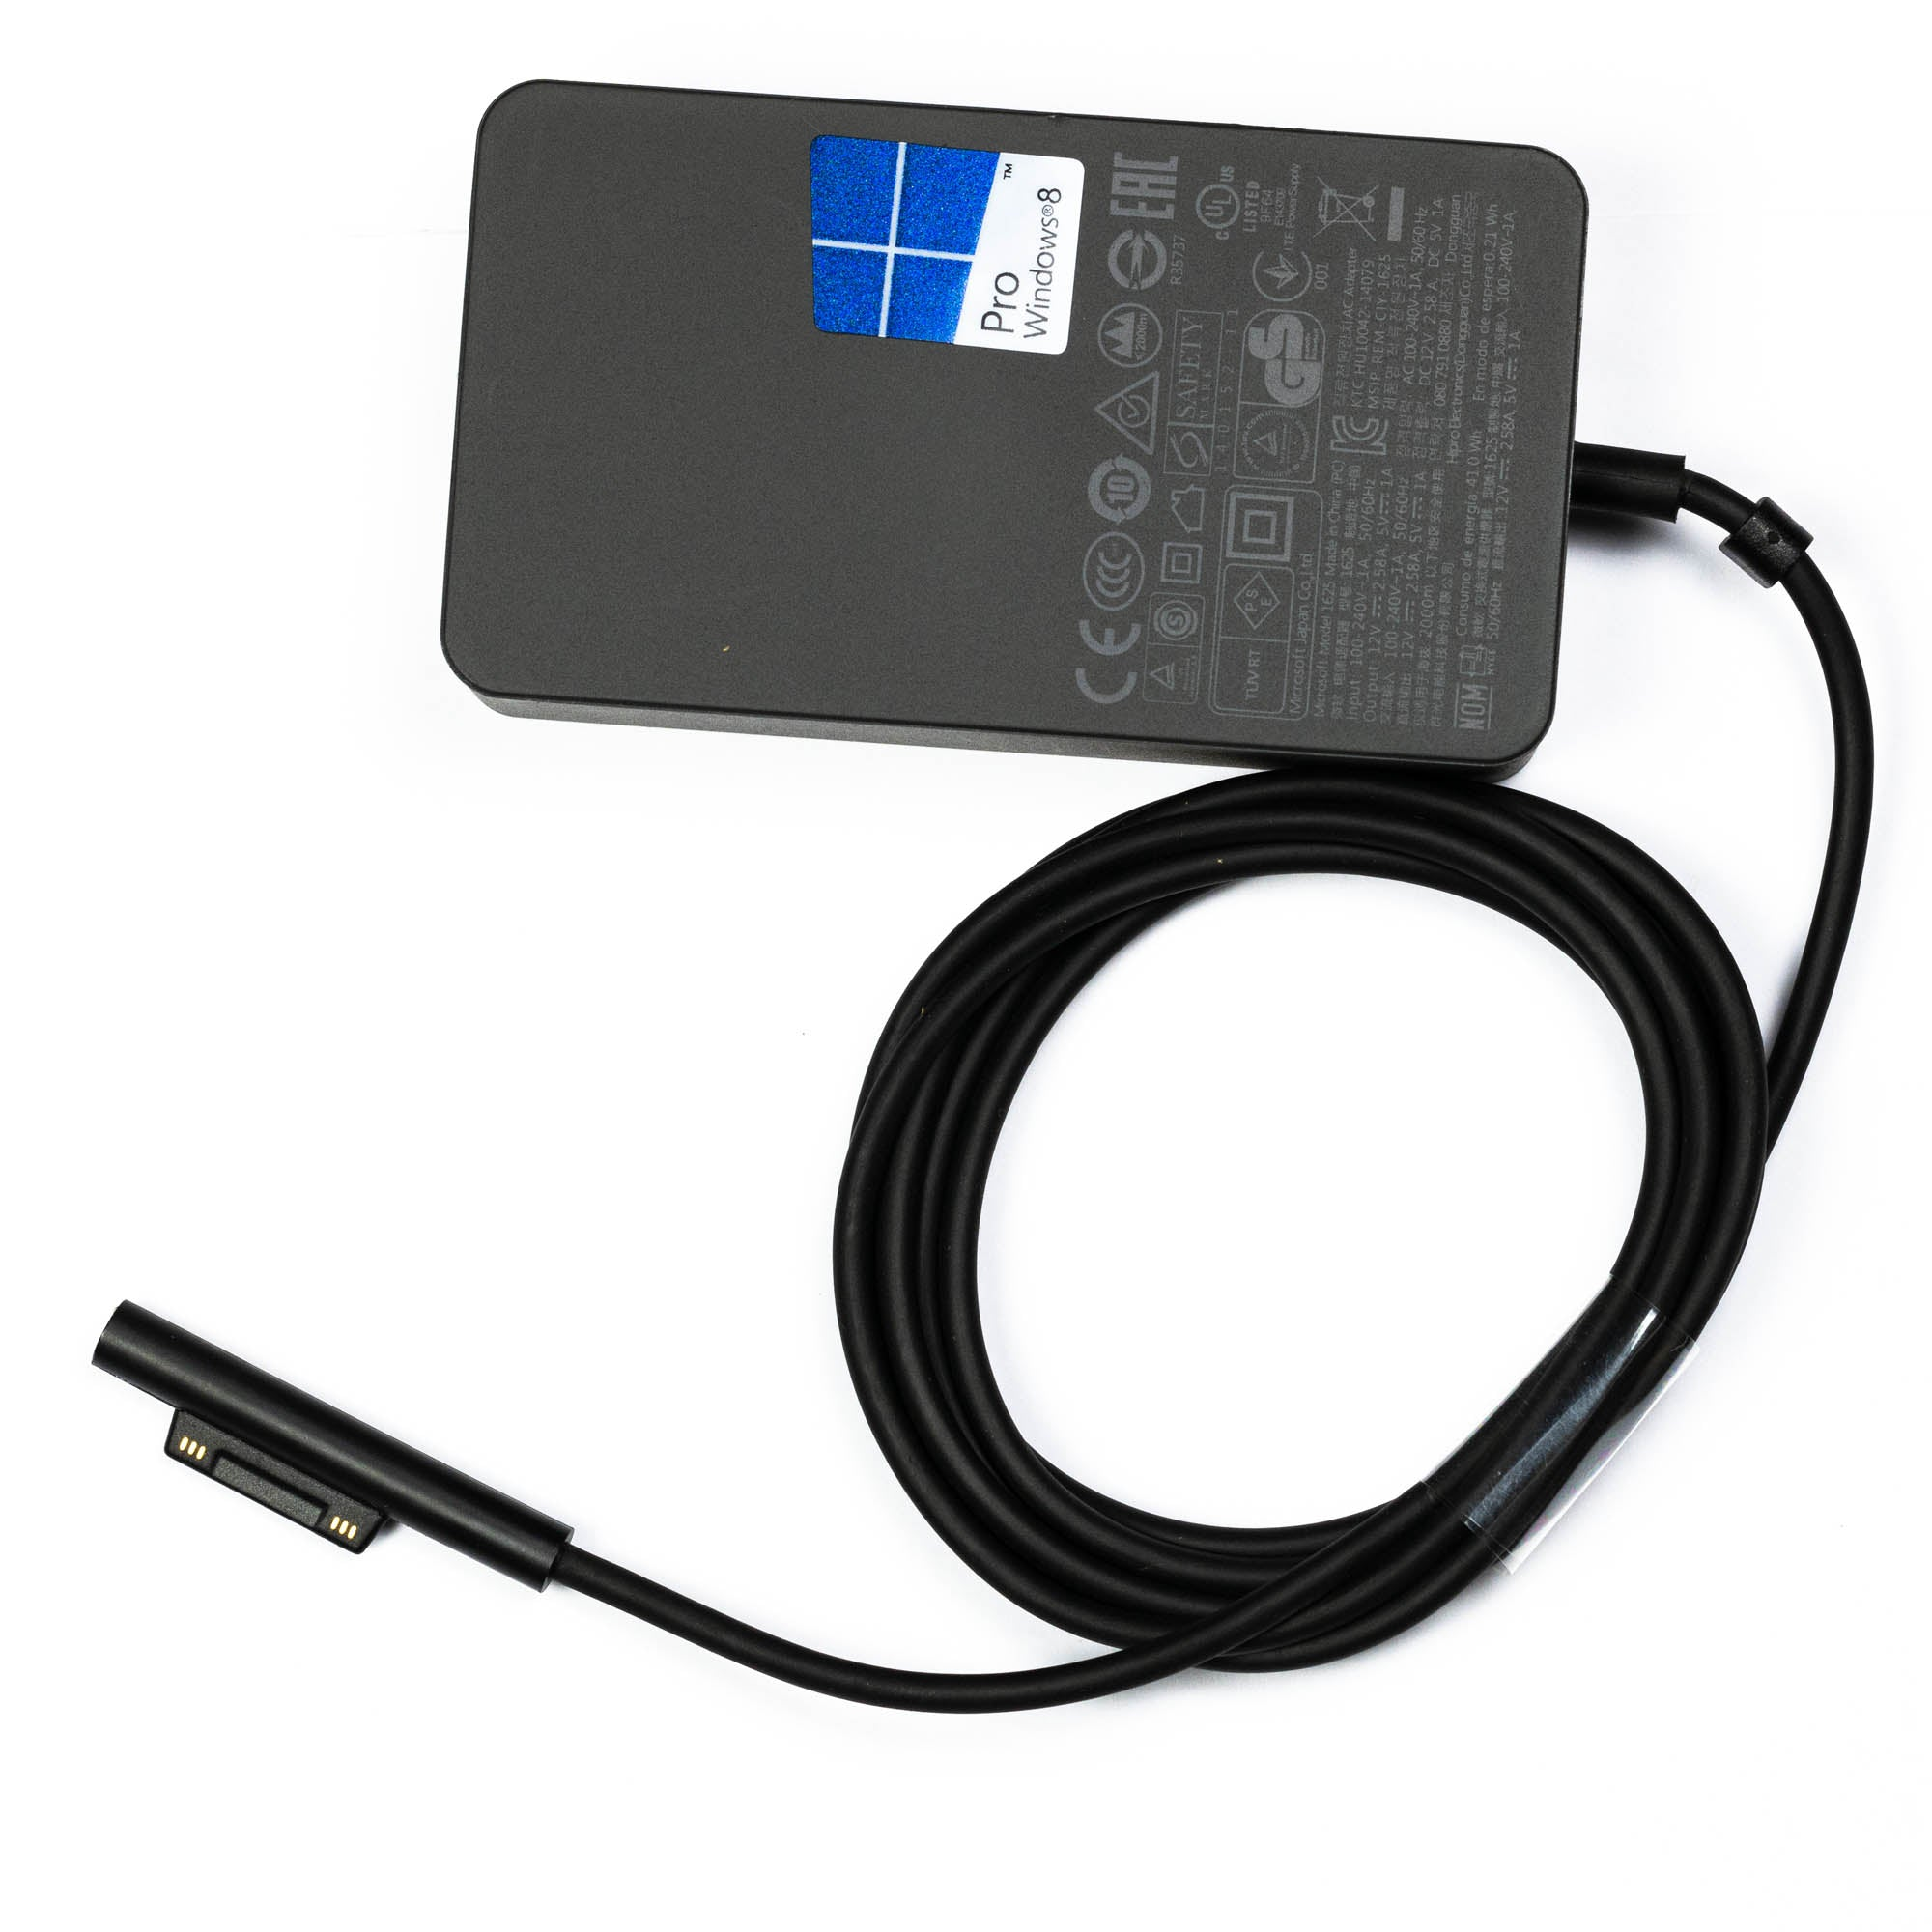 Microsoft 30W 12V 2.58A Surface Pro 3 Laptop AC Adapter Charger